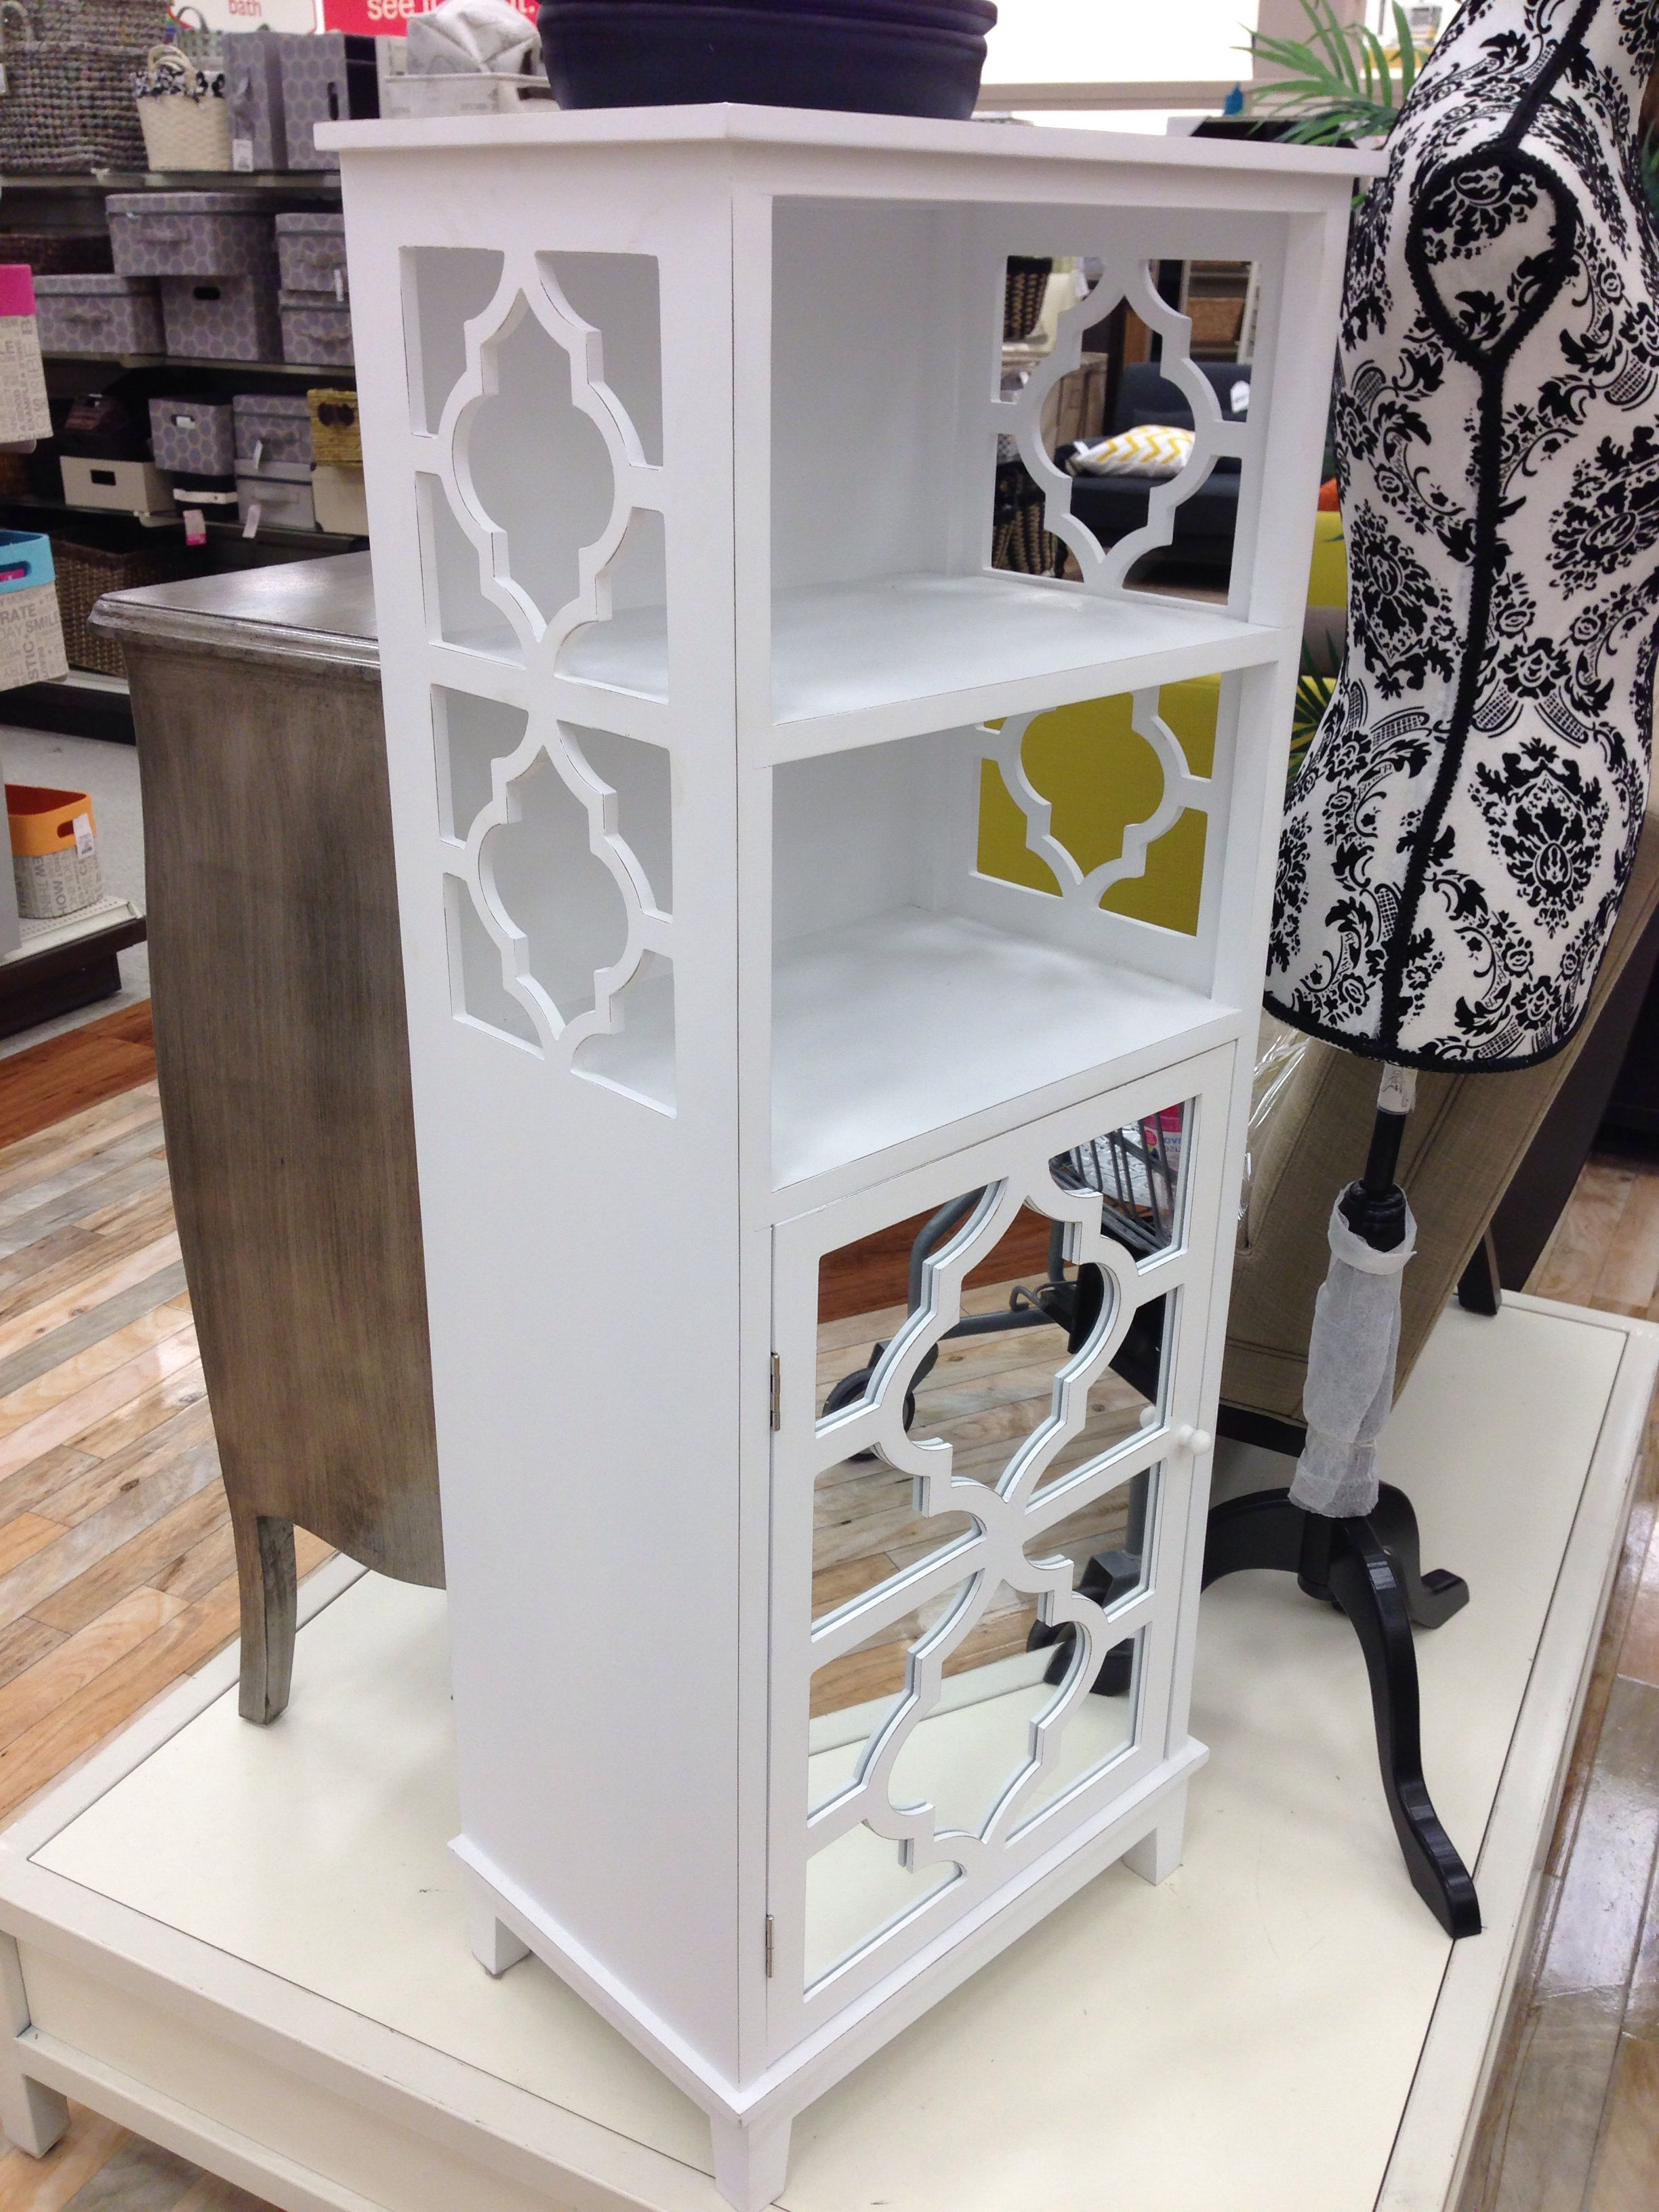 Homesense Accent Chairs White Moroccan Tile Design Cabinet Homesense Canada